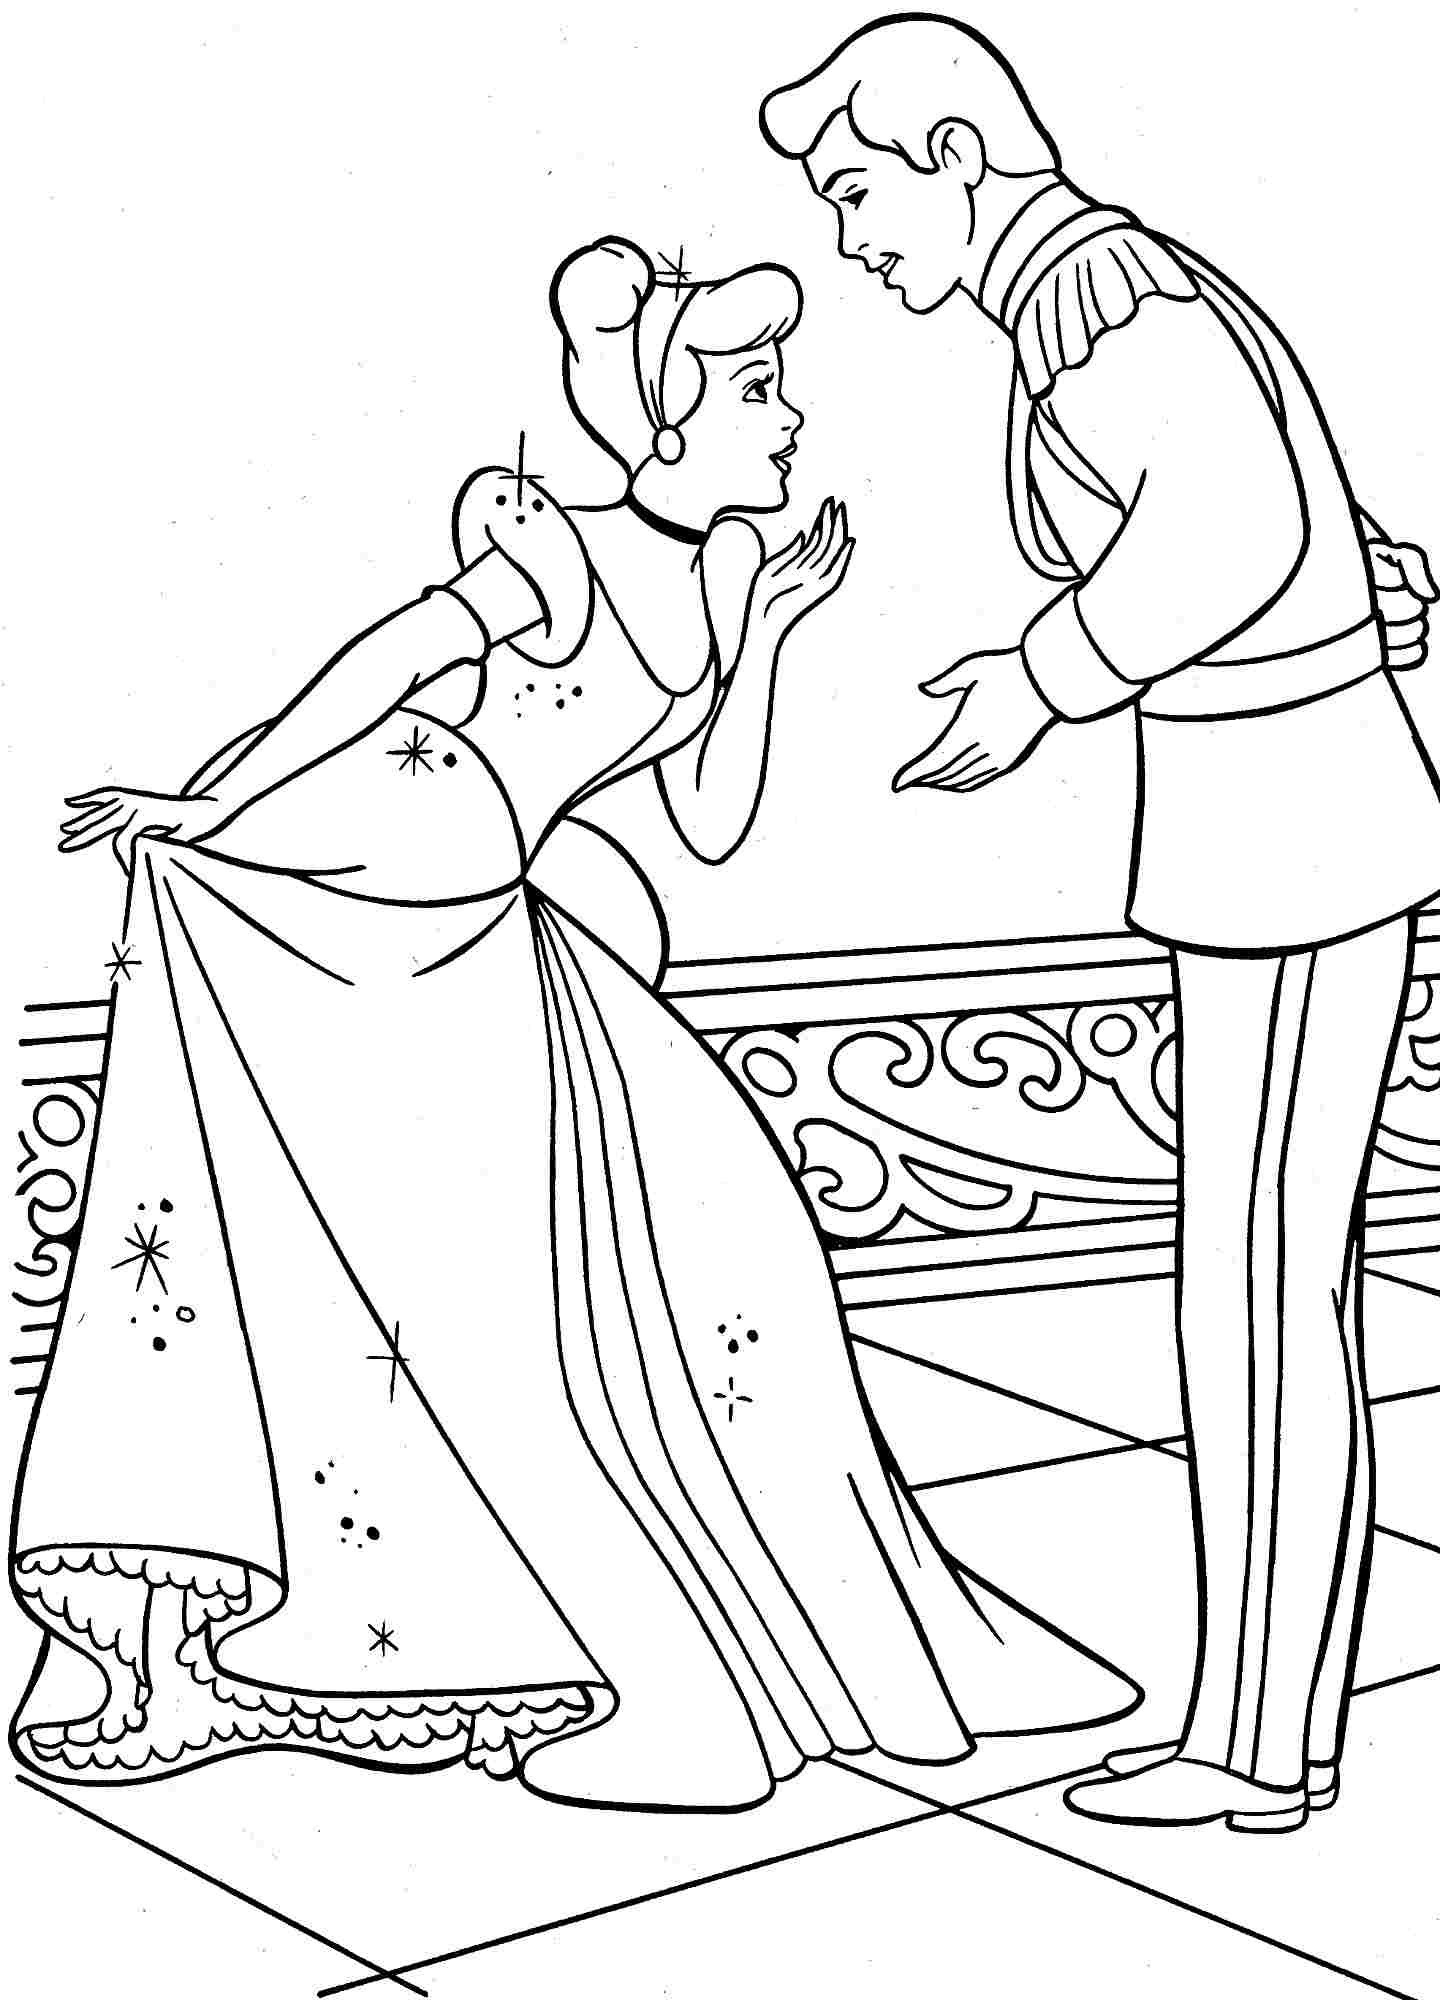 coloring cinderella pictures free printable cinderella coloring pages for kids cool2bkids cinderella pictures coloring